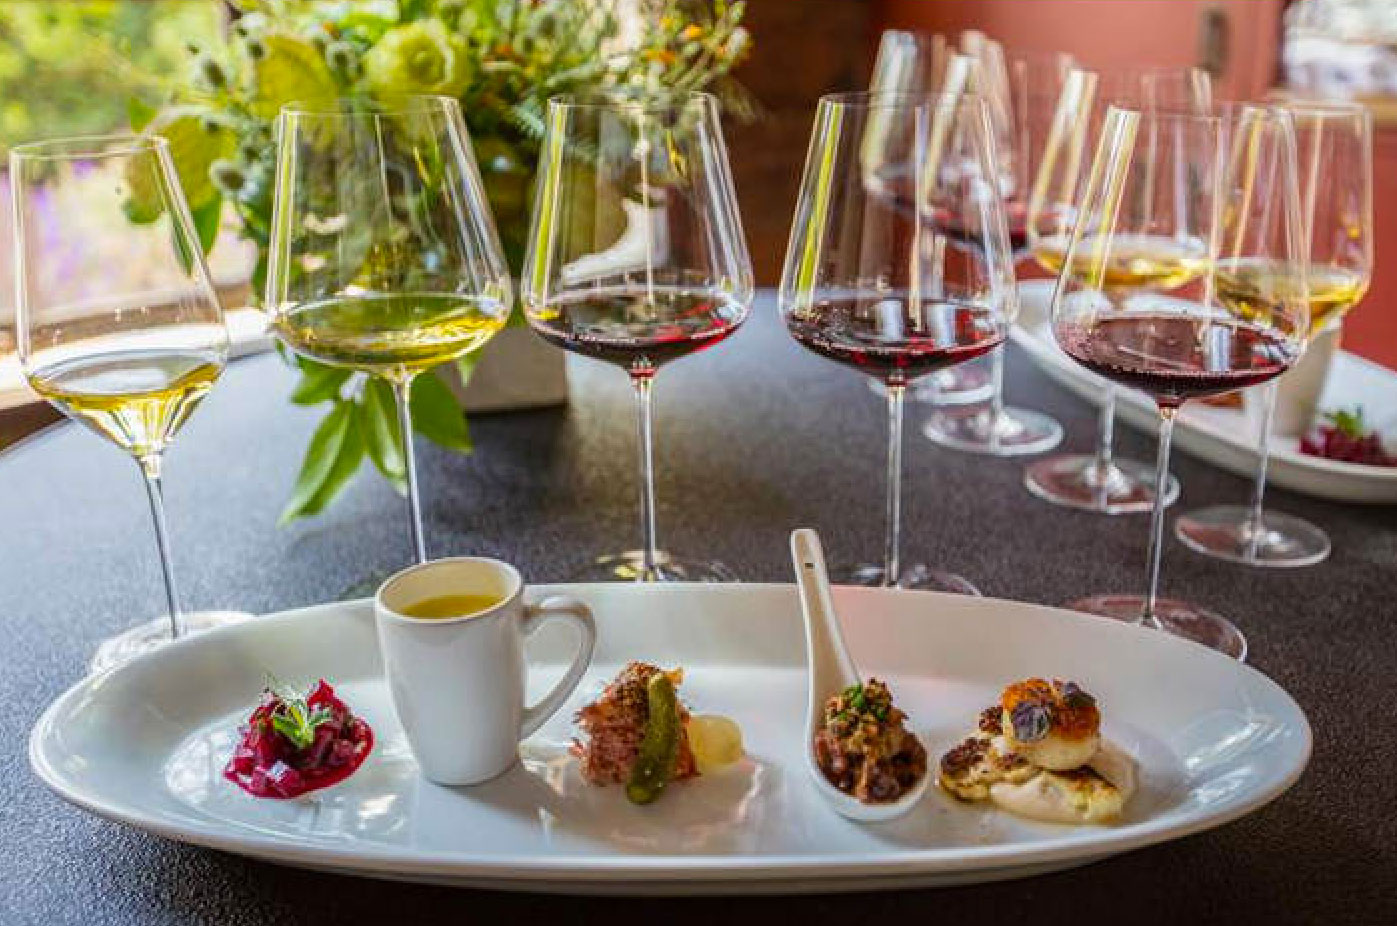 wine pairing Figs are a delicacy that show up only seasonally wine pairings for peak-fresh figs complement the delicate sweet flavor of the fruit.